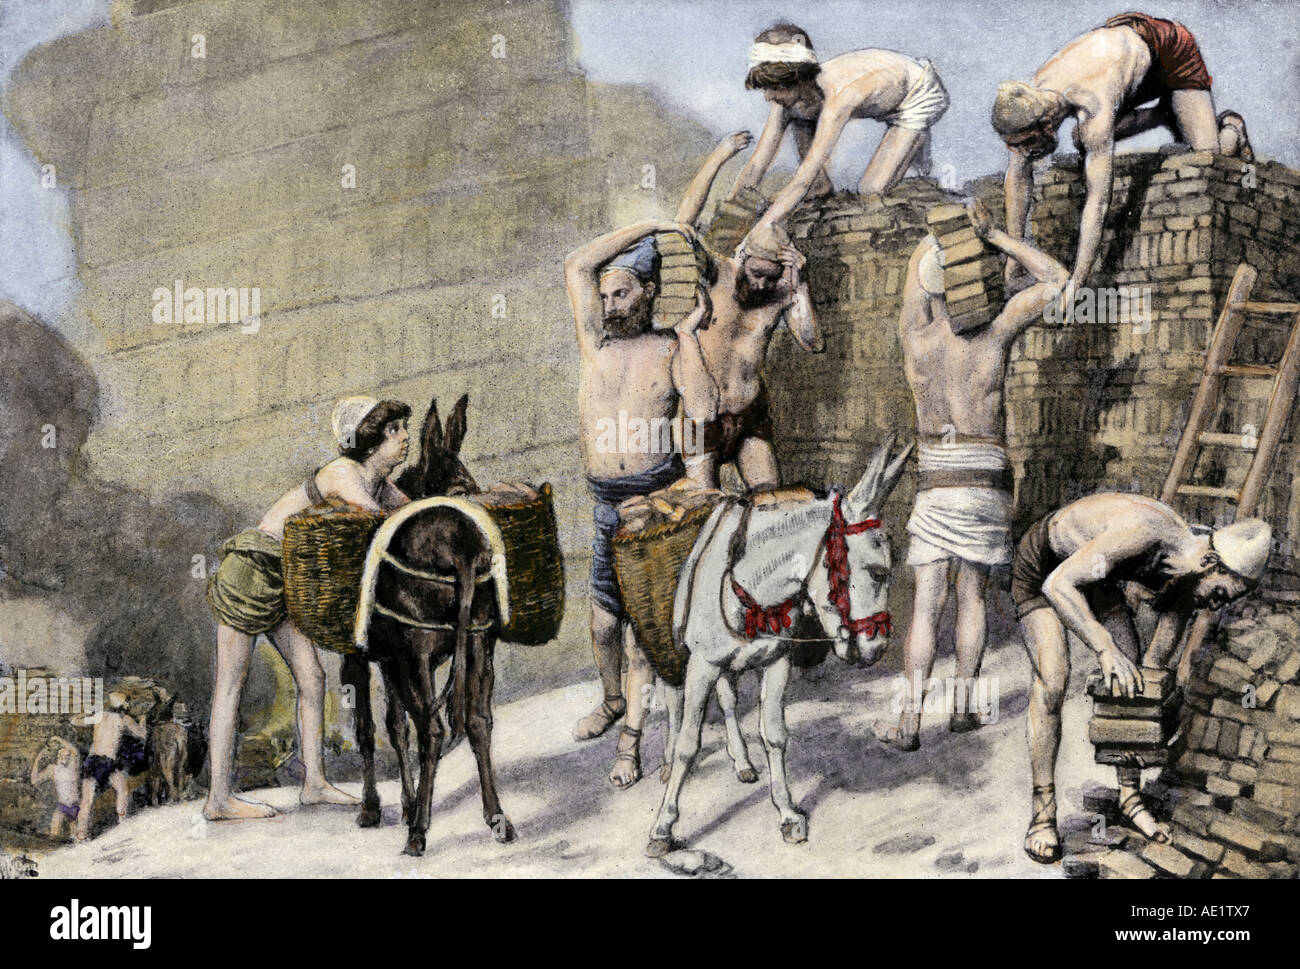 babylonian slaves Today the empire of the babylonian slave-drivers is under threat like never before first of all, large.